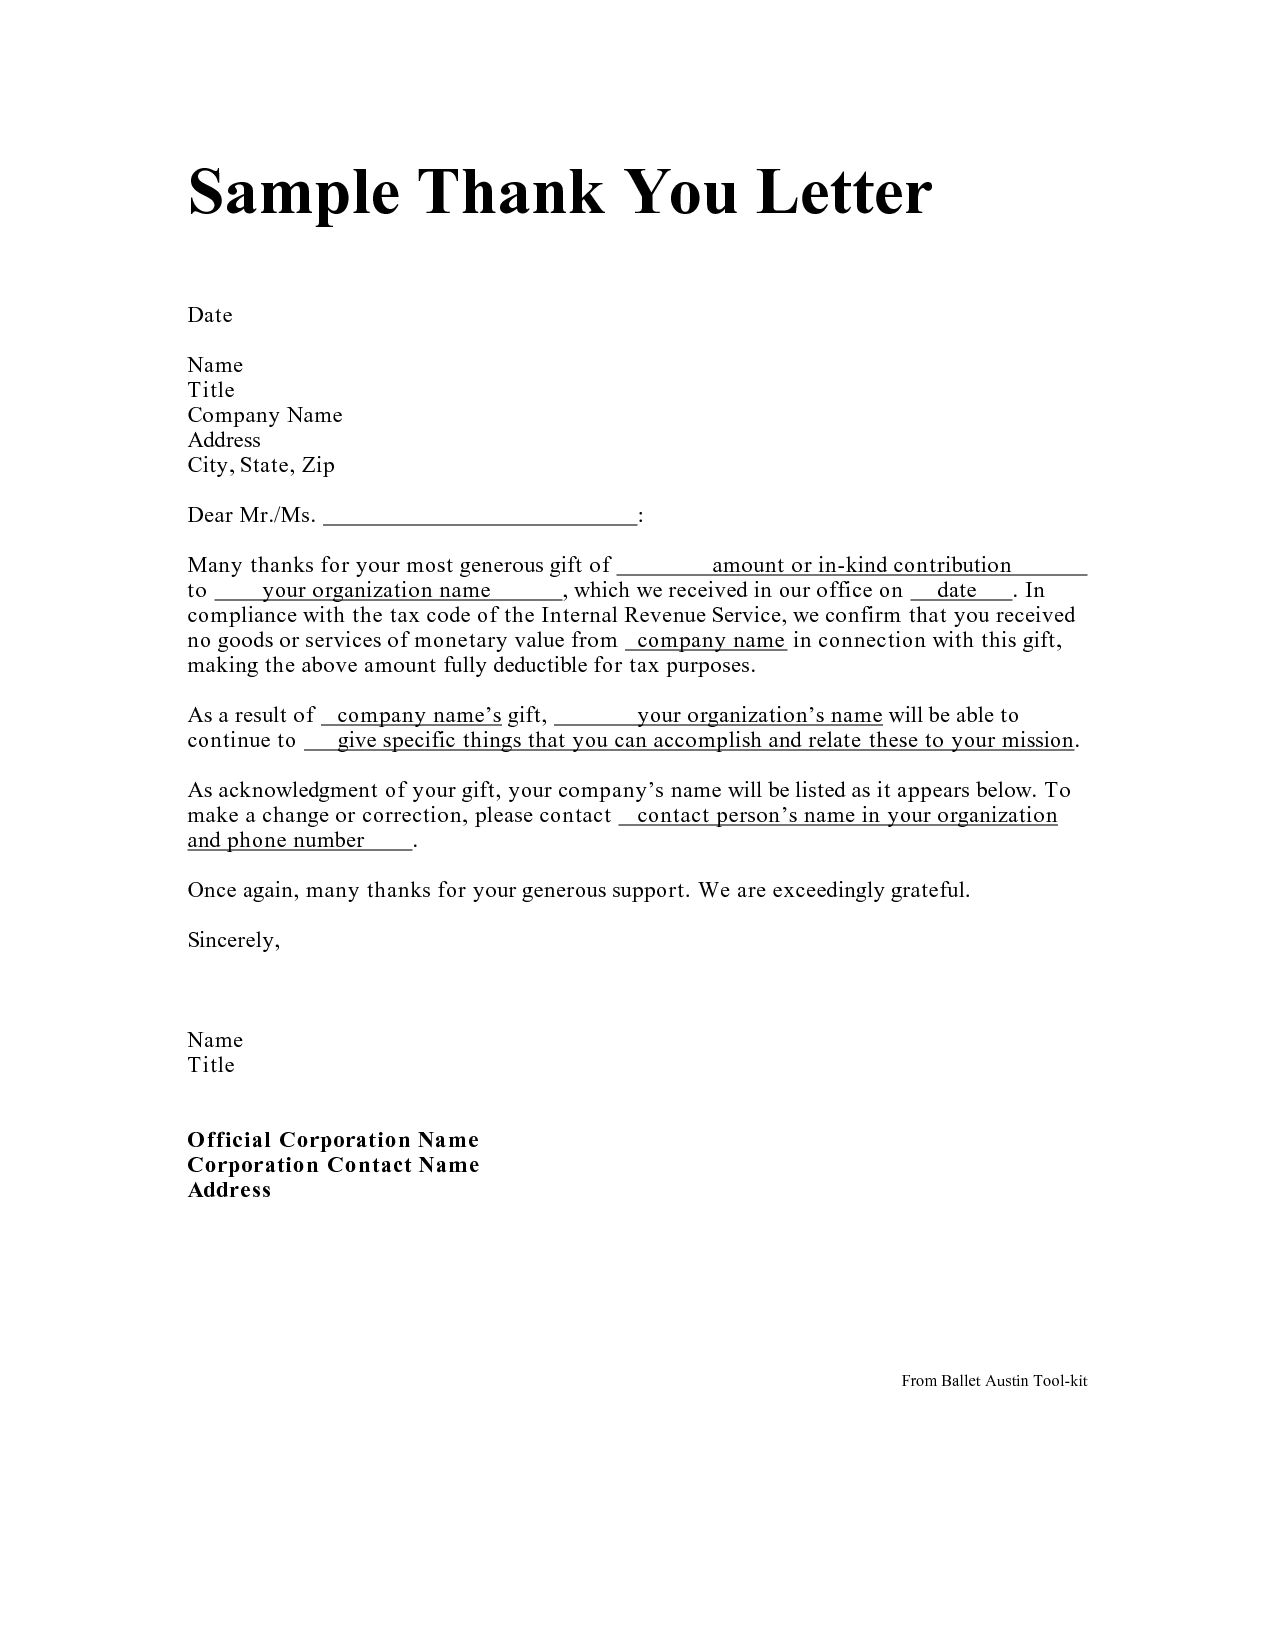 Personal Thank You Letter Personal Thank You Letter Samples – Thank You Note Sample